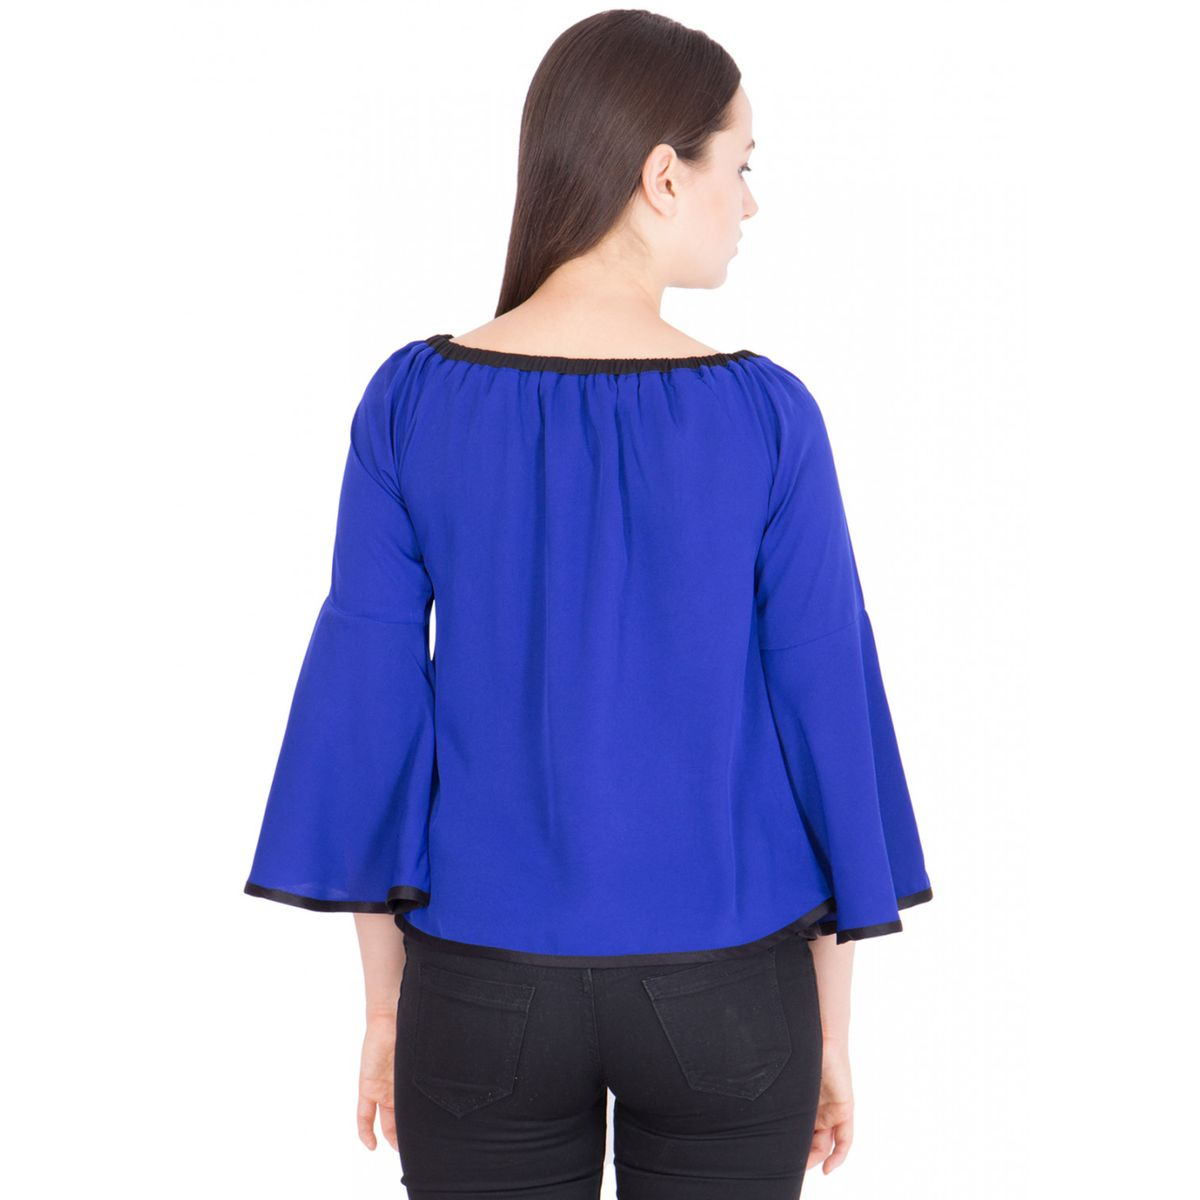 Khhalisi boat neck  Royal Blue